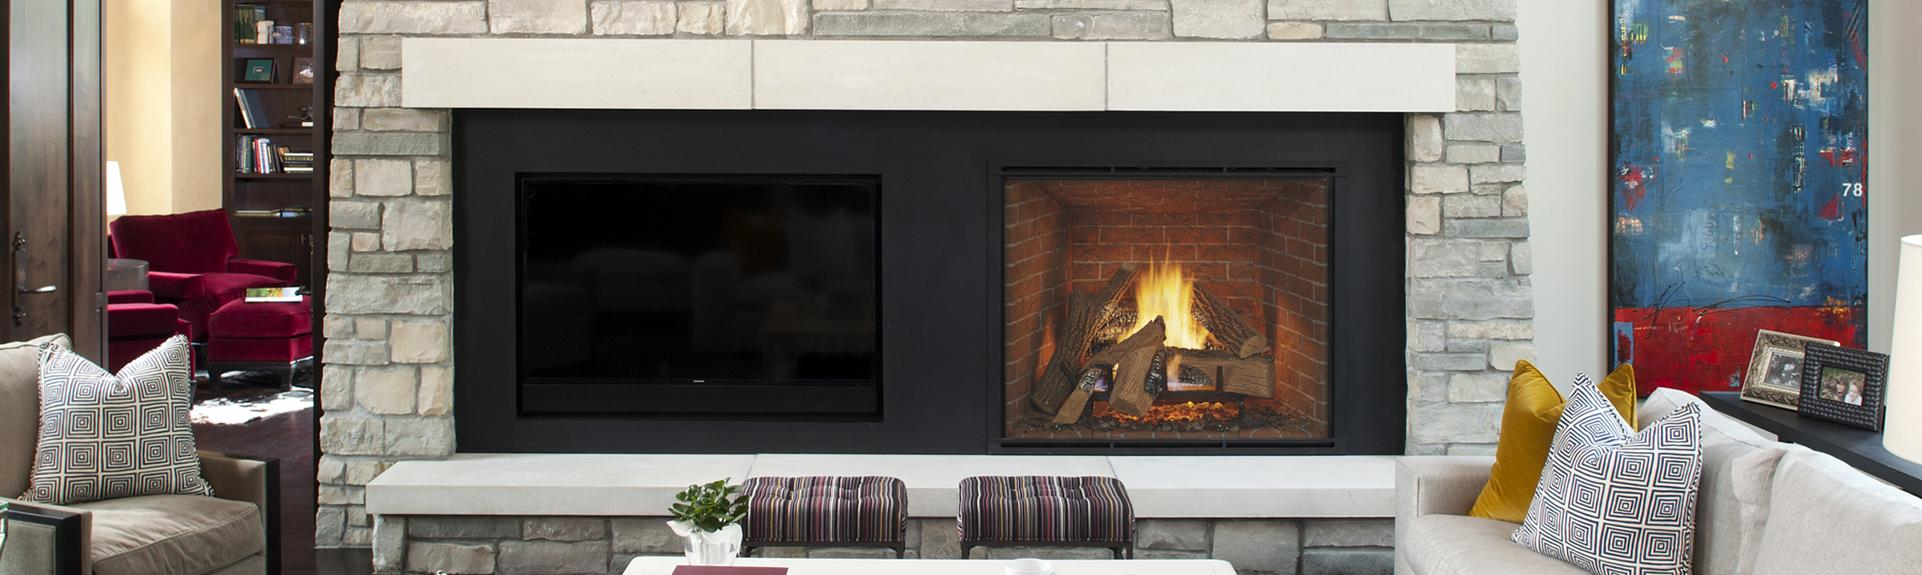 Natural Gas Vs Wood Burning Fireplaces Pros And Cons